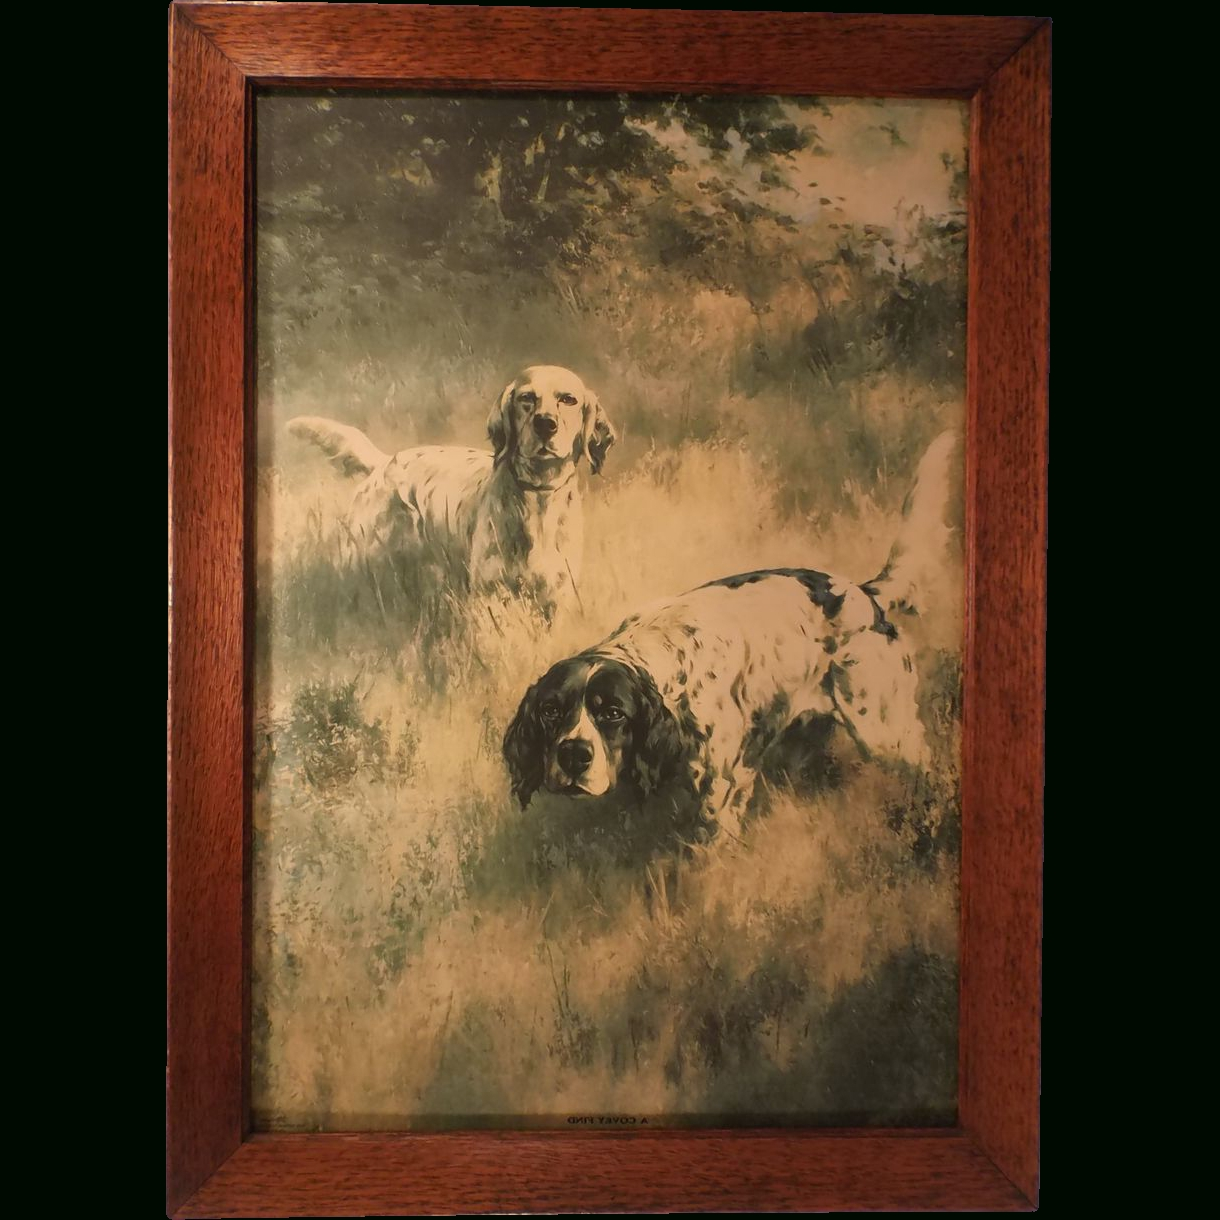 A Covey Find, Vintage Fine Art Framed Hunting Dog Print, Percival For Most Recently Released Dog Art Framed Prints (Gallery 7 of 15)